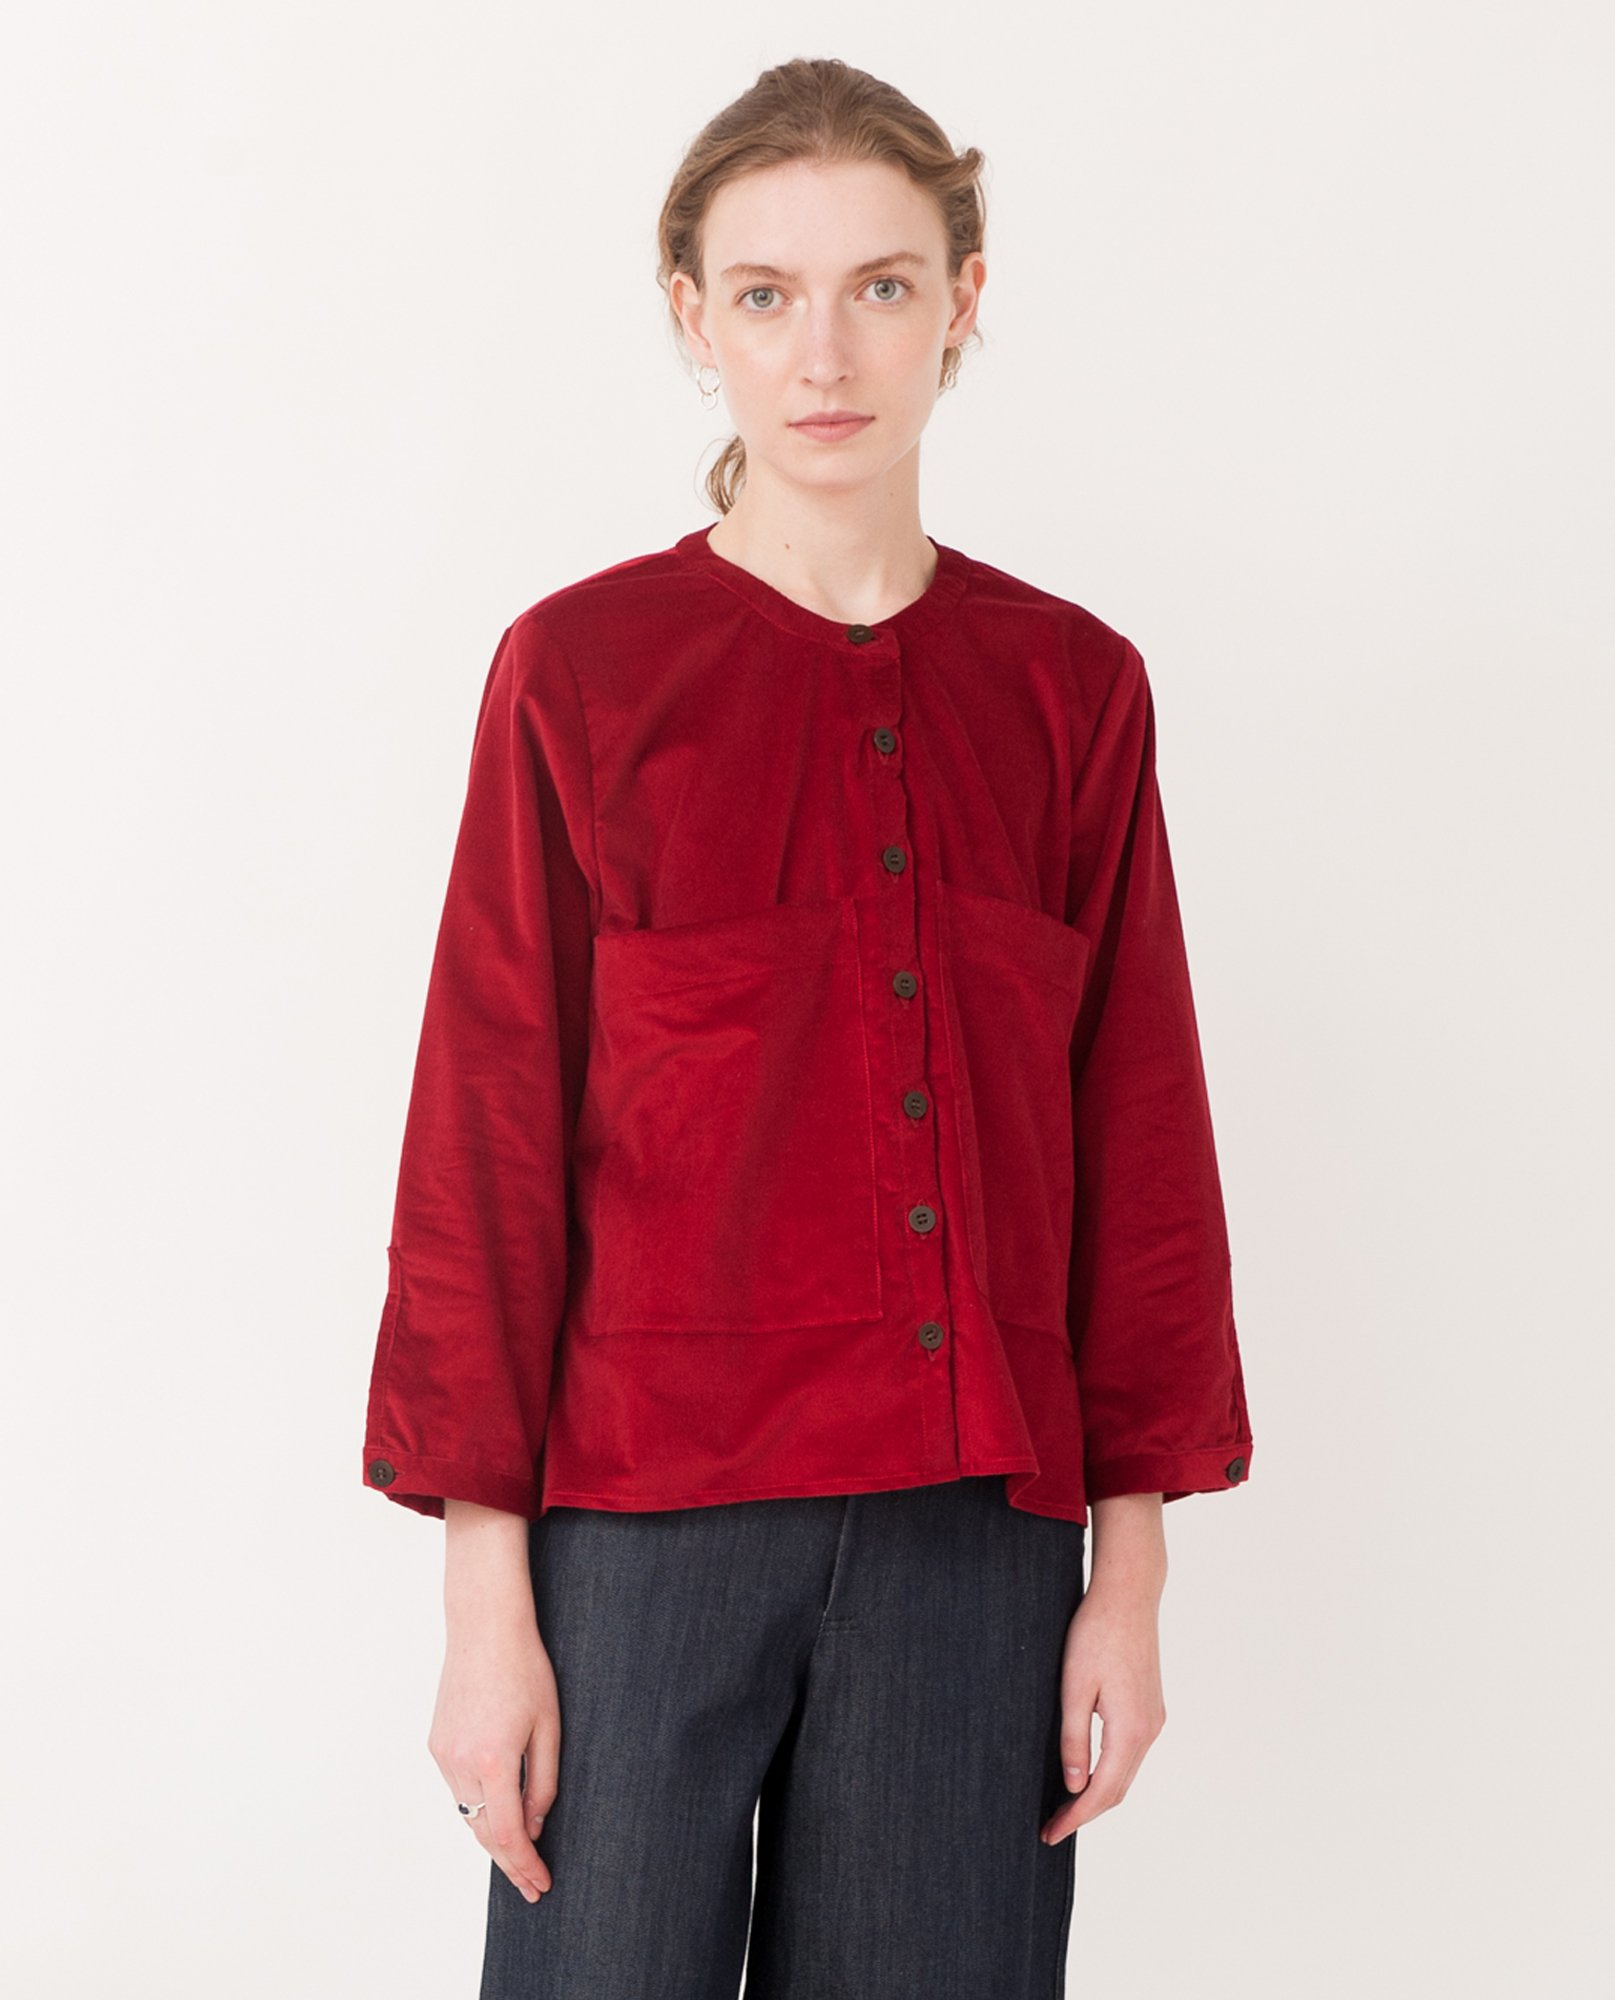 BONNIE Organic Cotton Cord Shirt In Red from Beaumont Organic